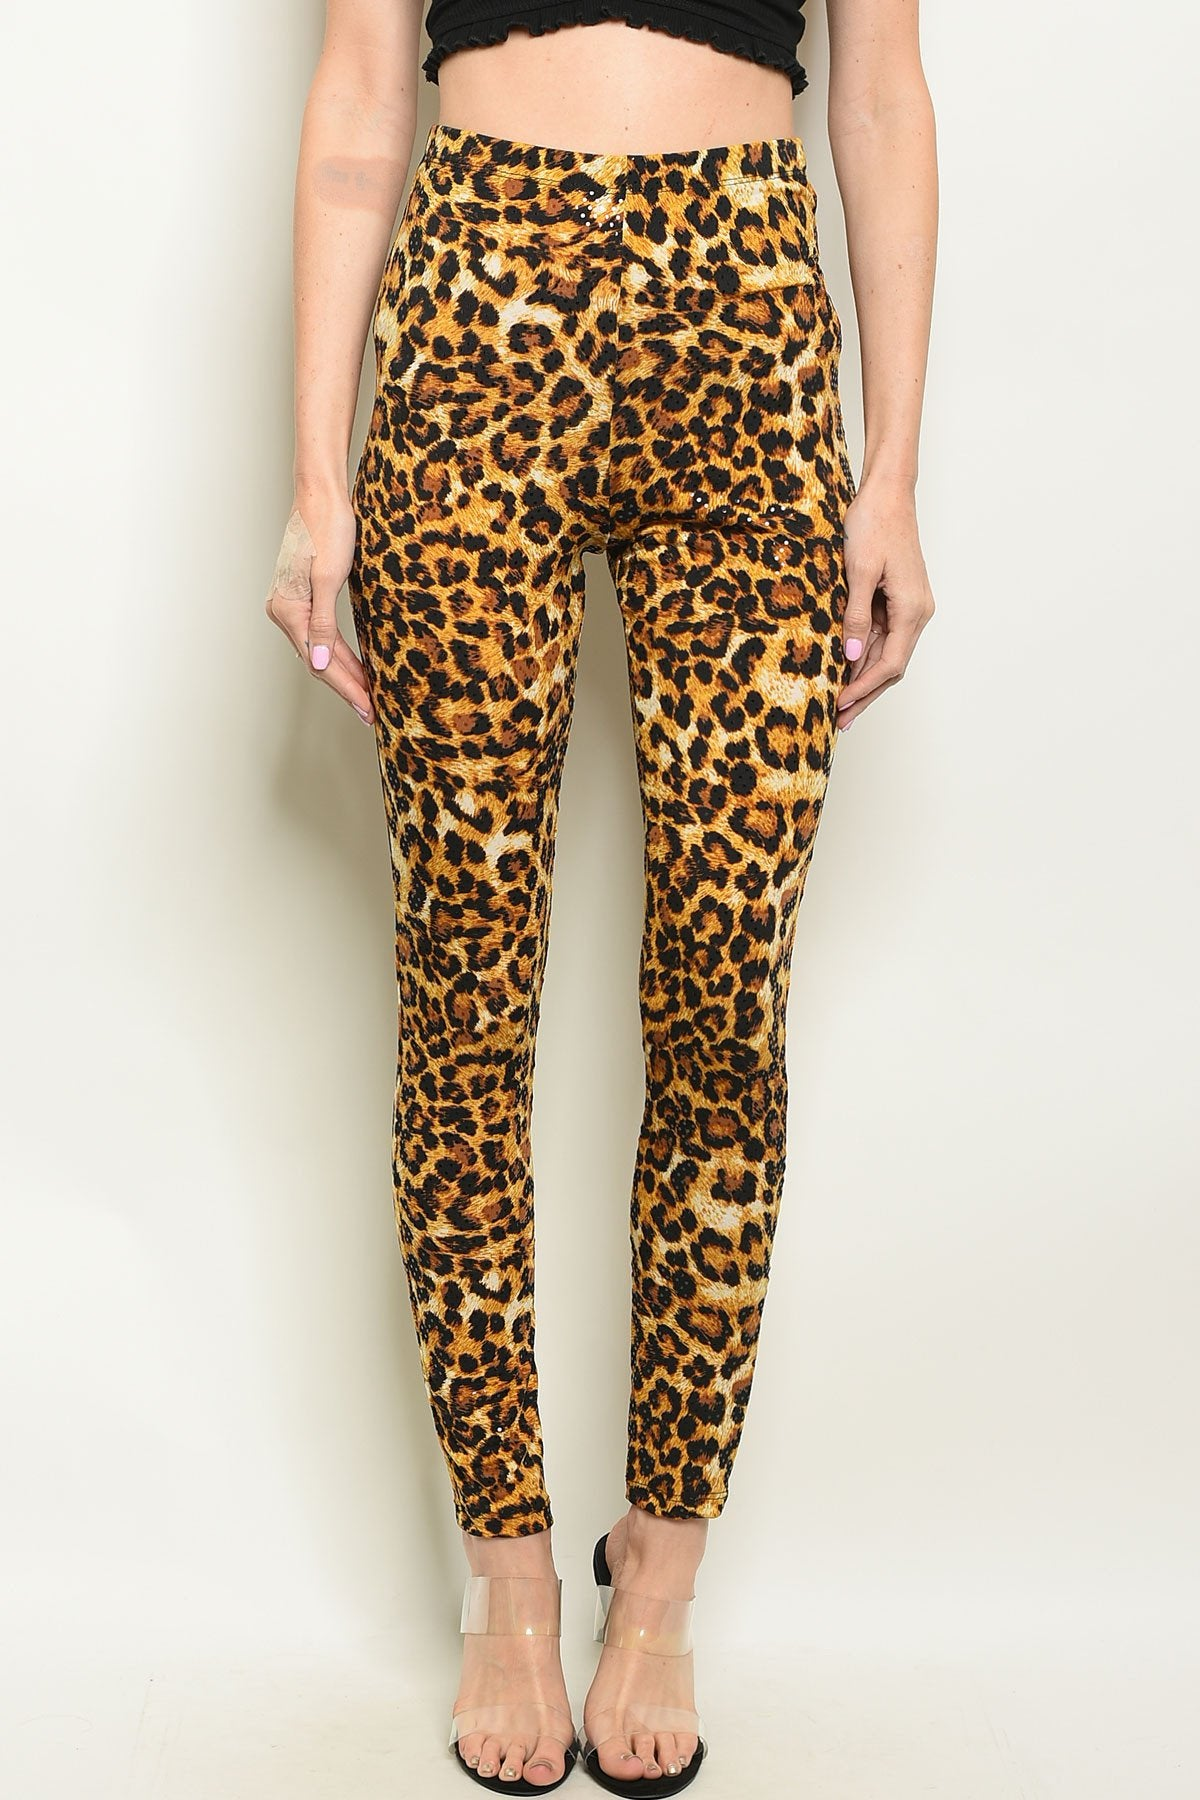 Leopard Print Pants - Manifest Best Boutique